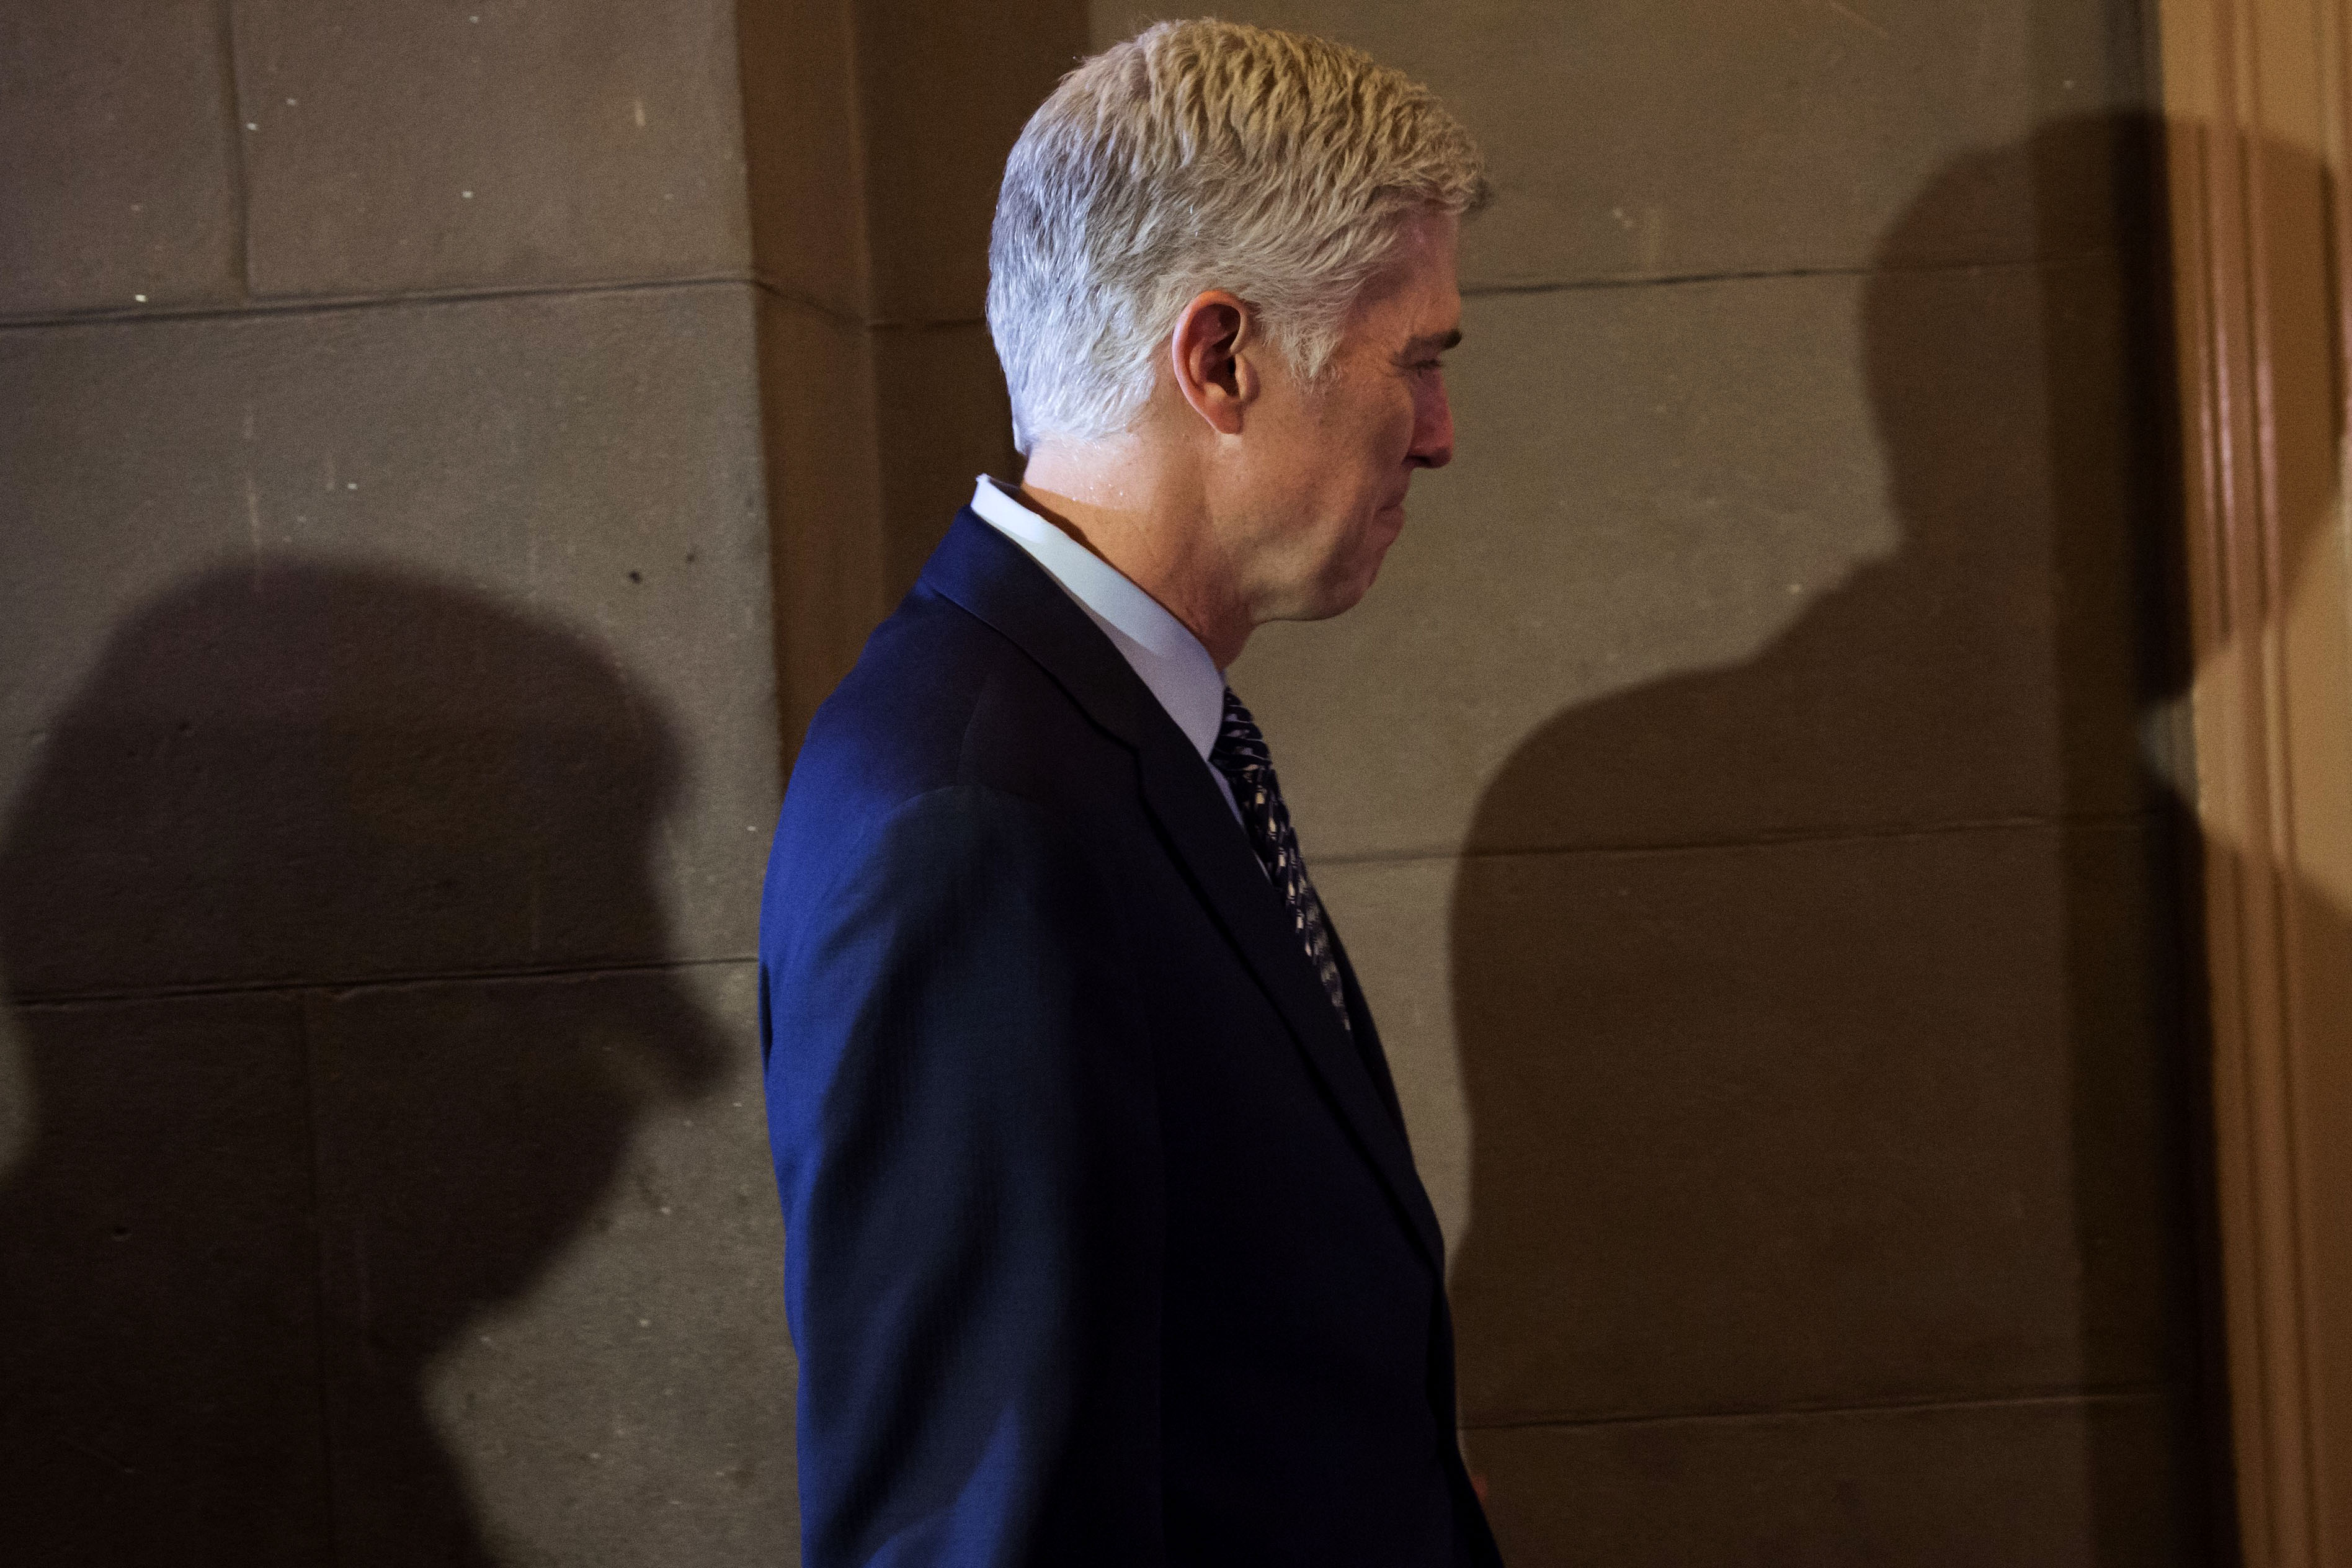 Supreme Court nominee Judge Neil Gorsuch arrives for a meeting at the US Capitol in Washington, DC, February 2, 2017. / AFP / SAUL LOEB        (Photo credit should read SAUL LOEB/AFP/Getty Images)